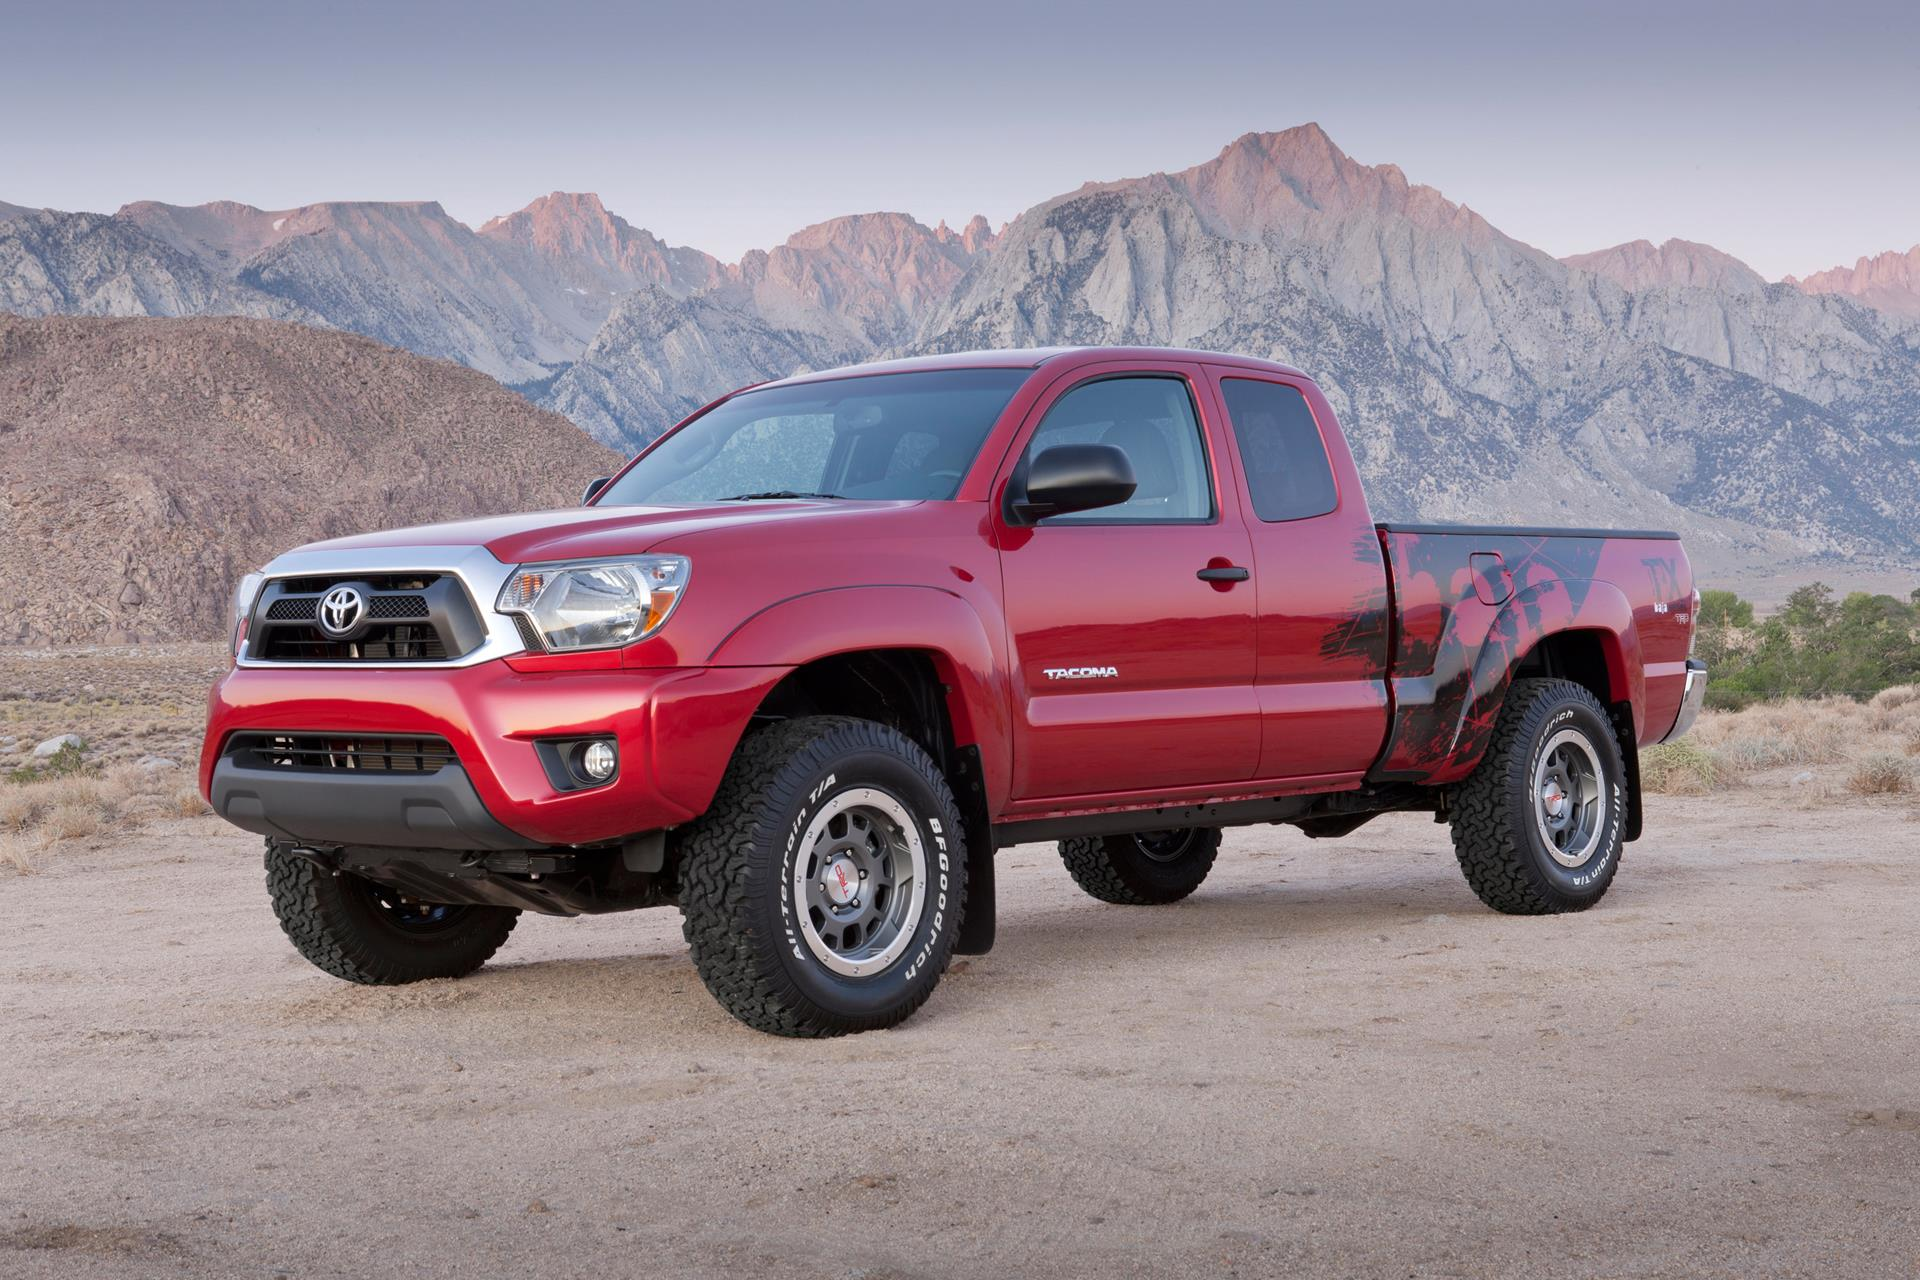 2015 toyota tacoma. Black Bedroom Furniture Sets. Home Design Ideas